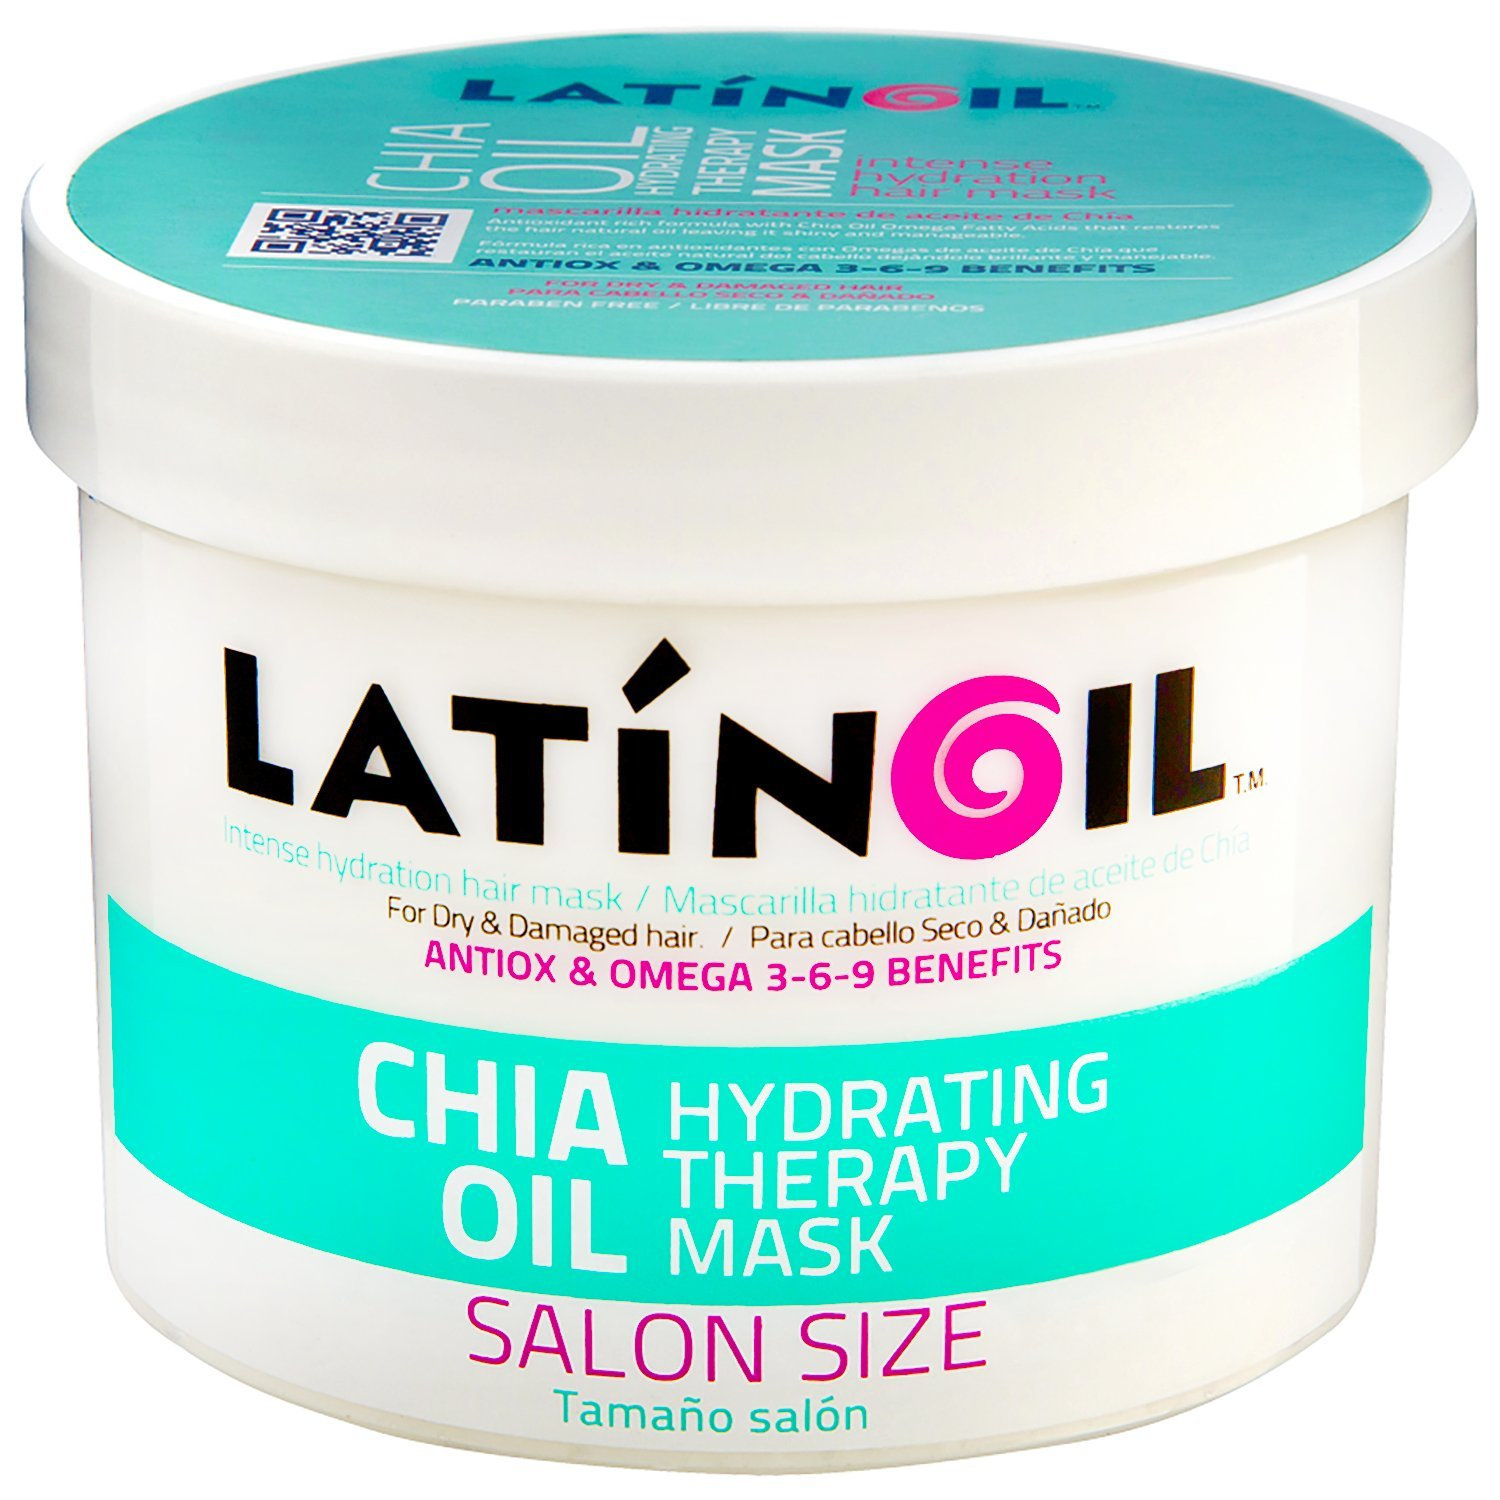 LATINOIL Chia Oil Hair Mask Treatment for Dry Damaged Hair - Deep Conditioner Anti Frizz Hydrating Moisturizer - for Low Porosity, Curly, Color Treated, Split End Hair Repair Masque for Women 8.5 Oz Mask250